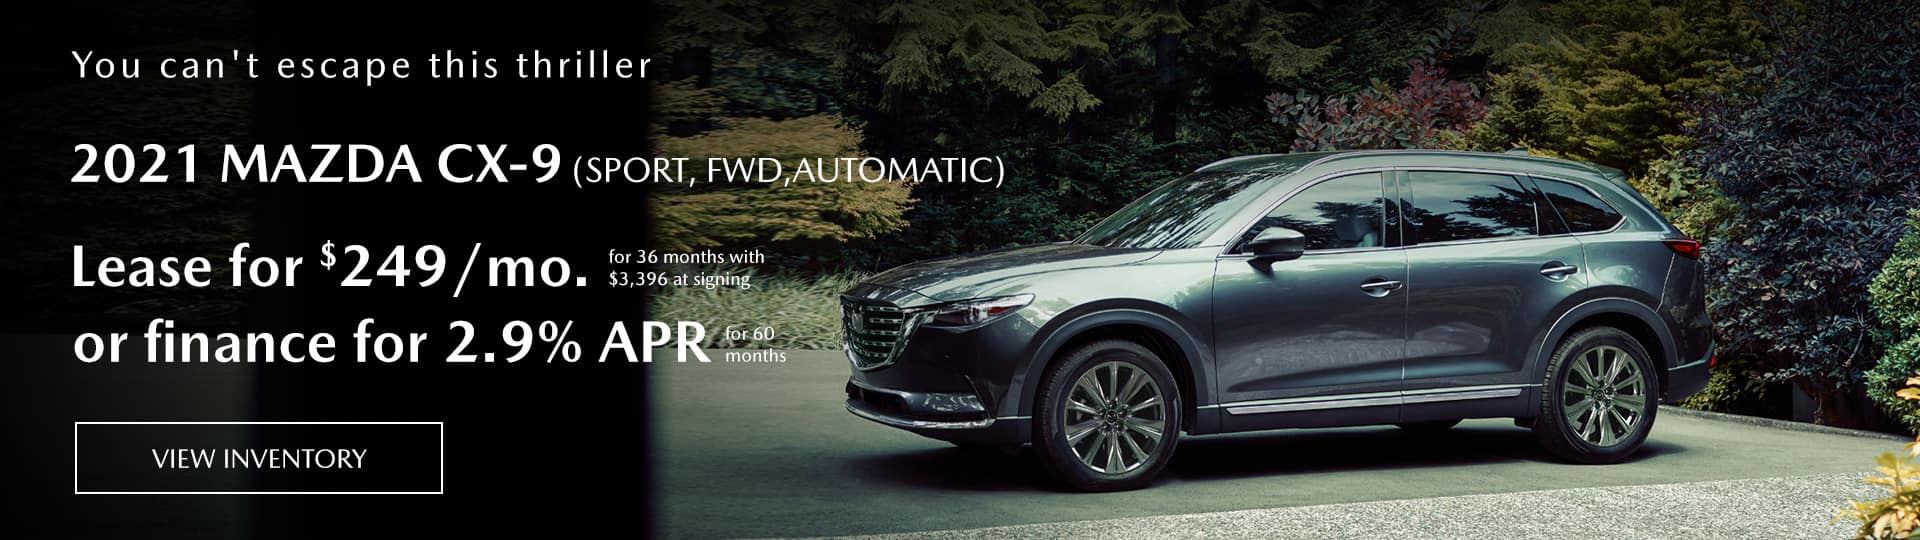 2021 mazda cx-9 (sport, FWD,automatic) lease for $249/mo. for 36 months with $3,396 at signing or finance for 2.9% apr for 60 months